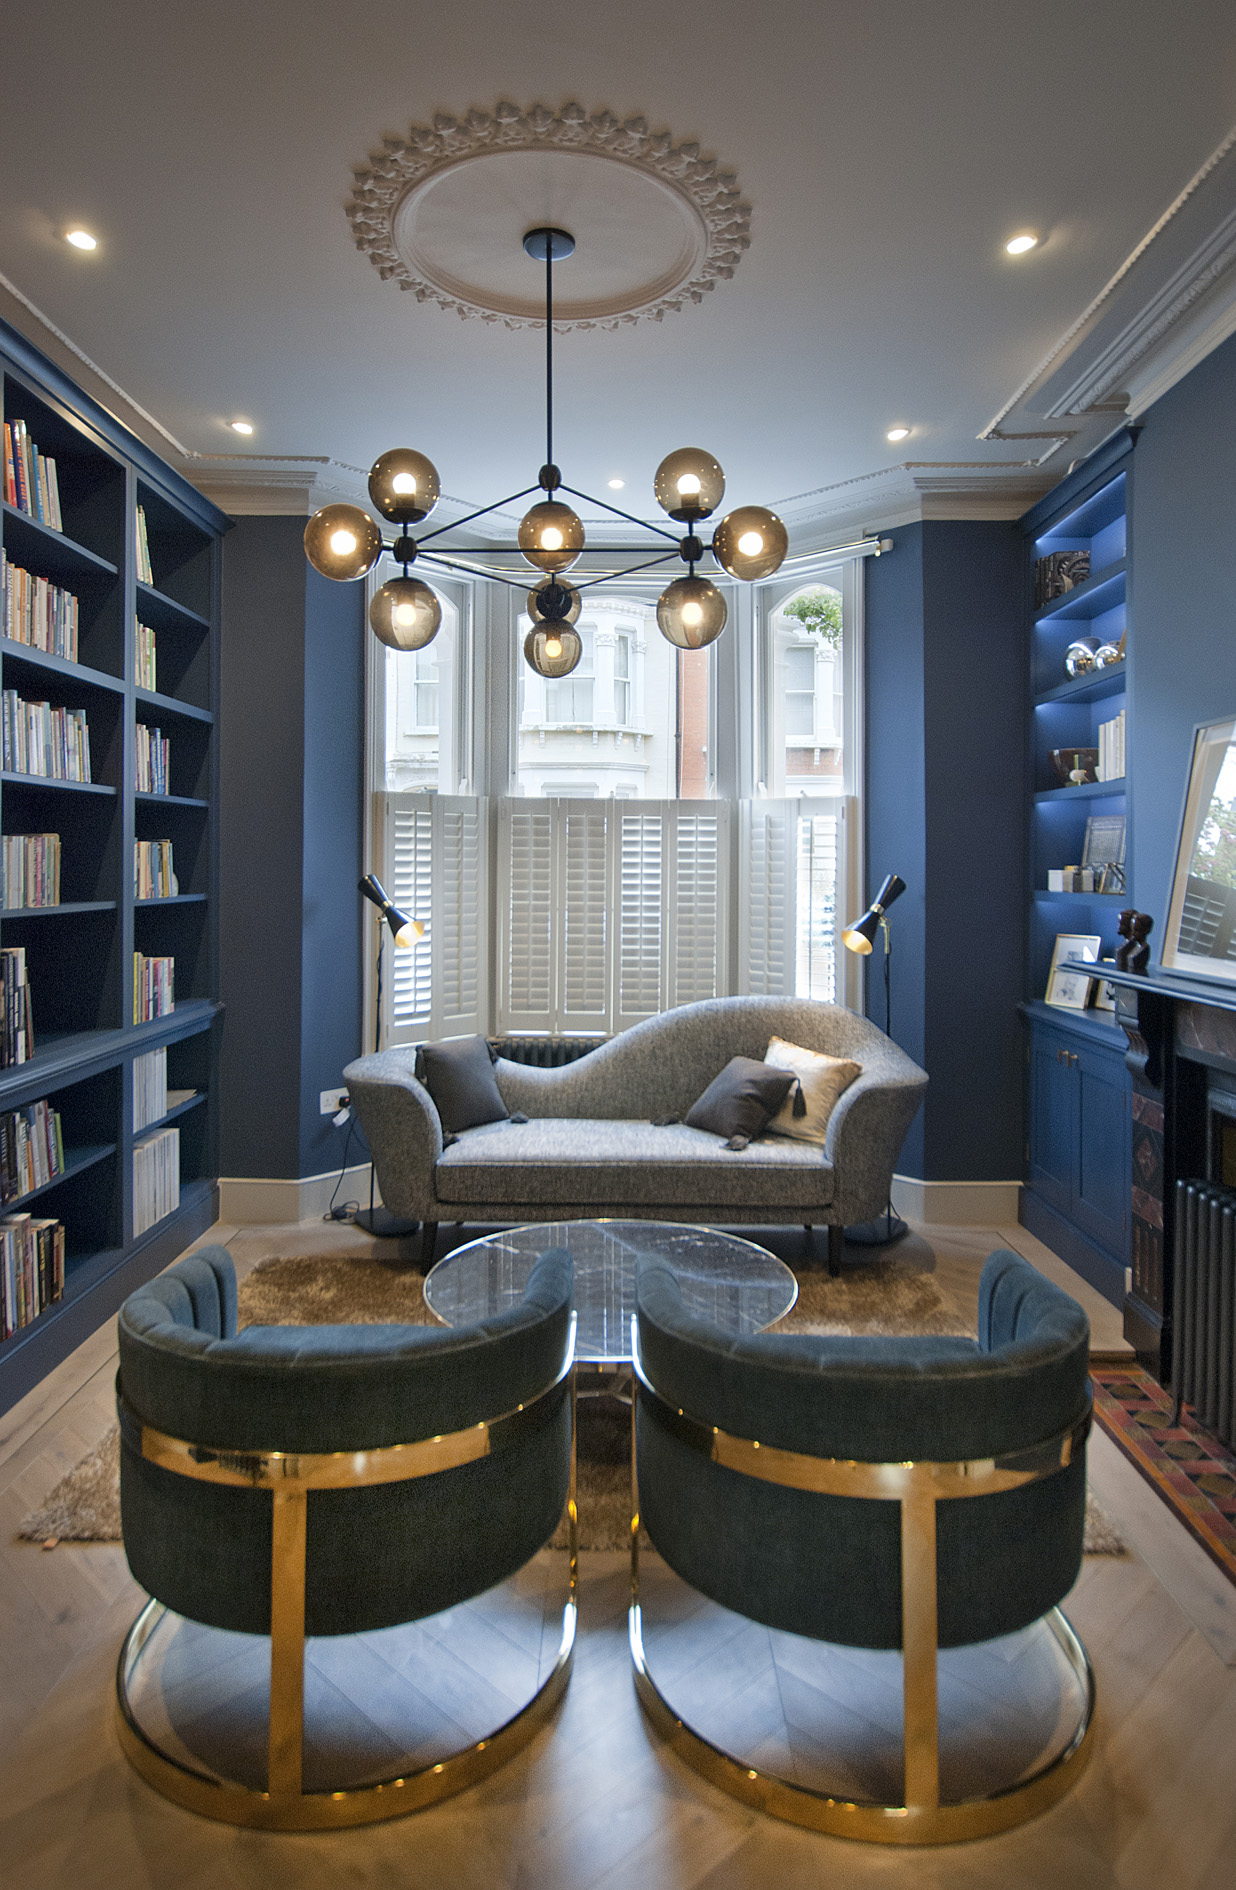 Contemporary interior design studio in London